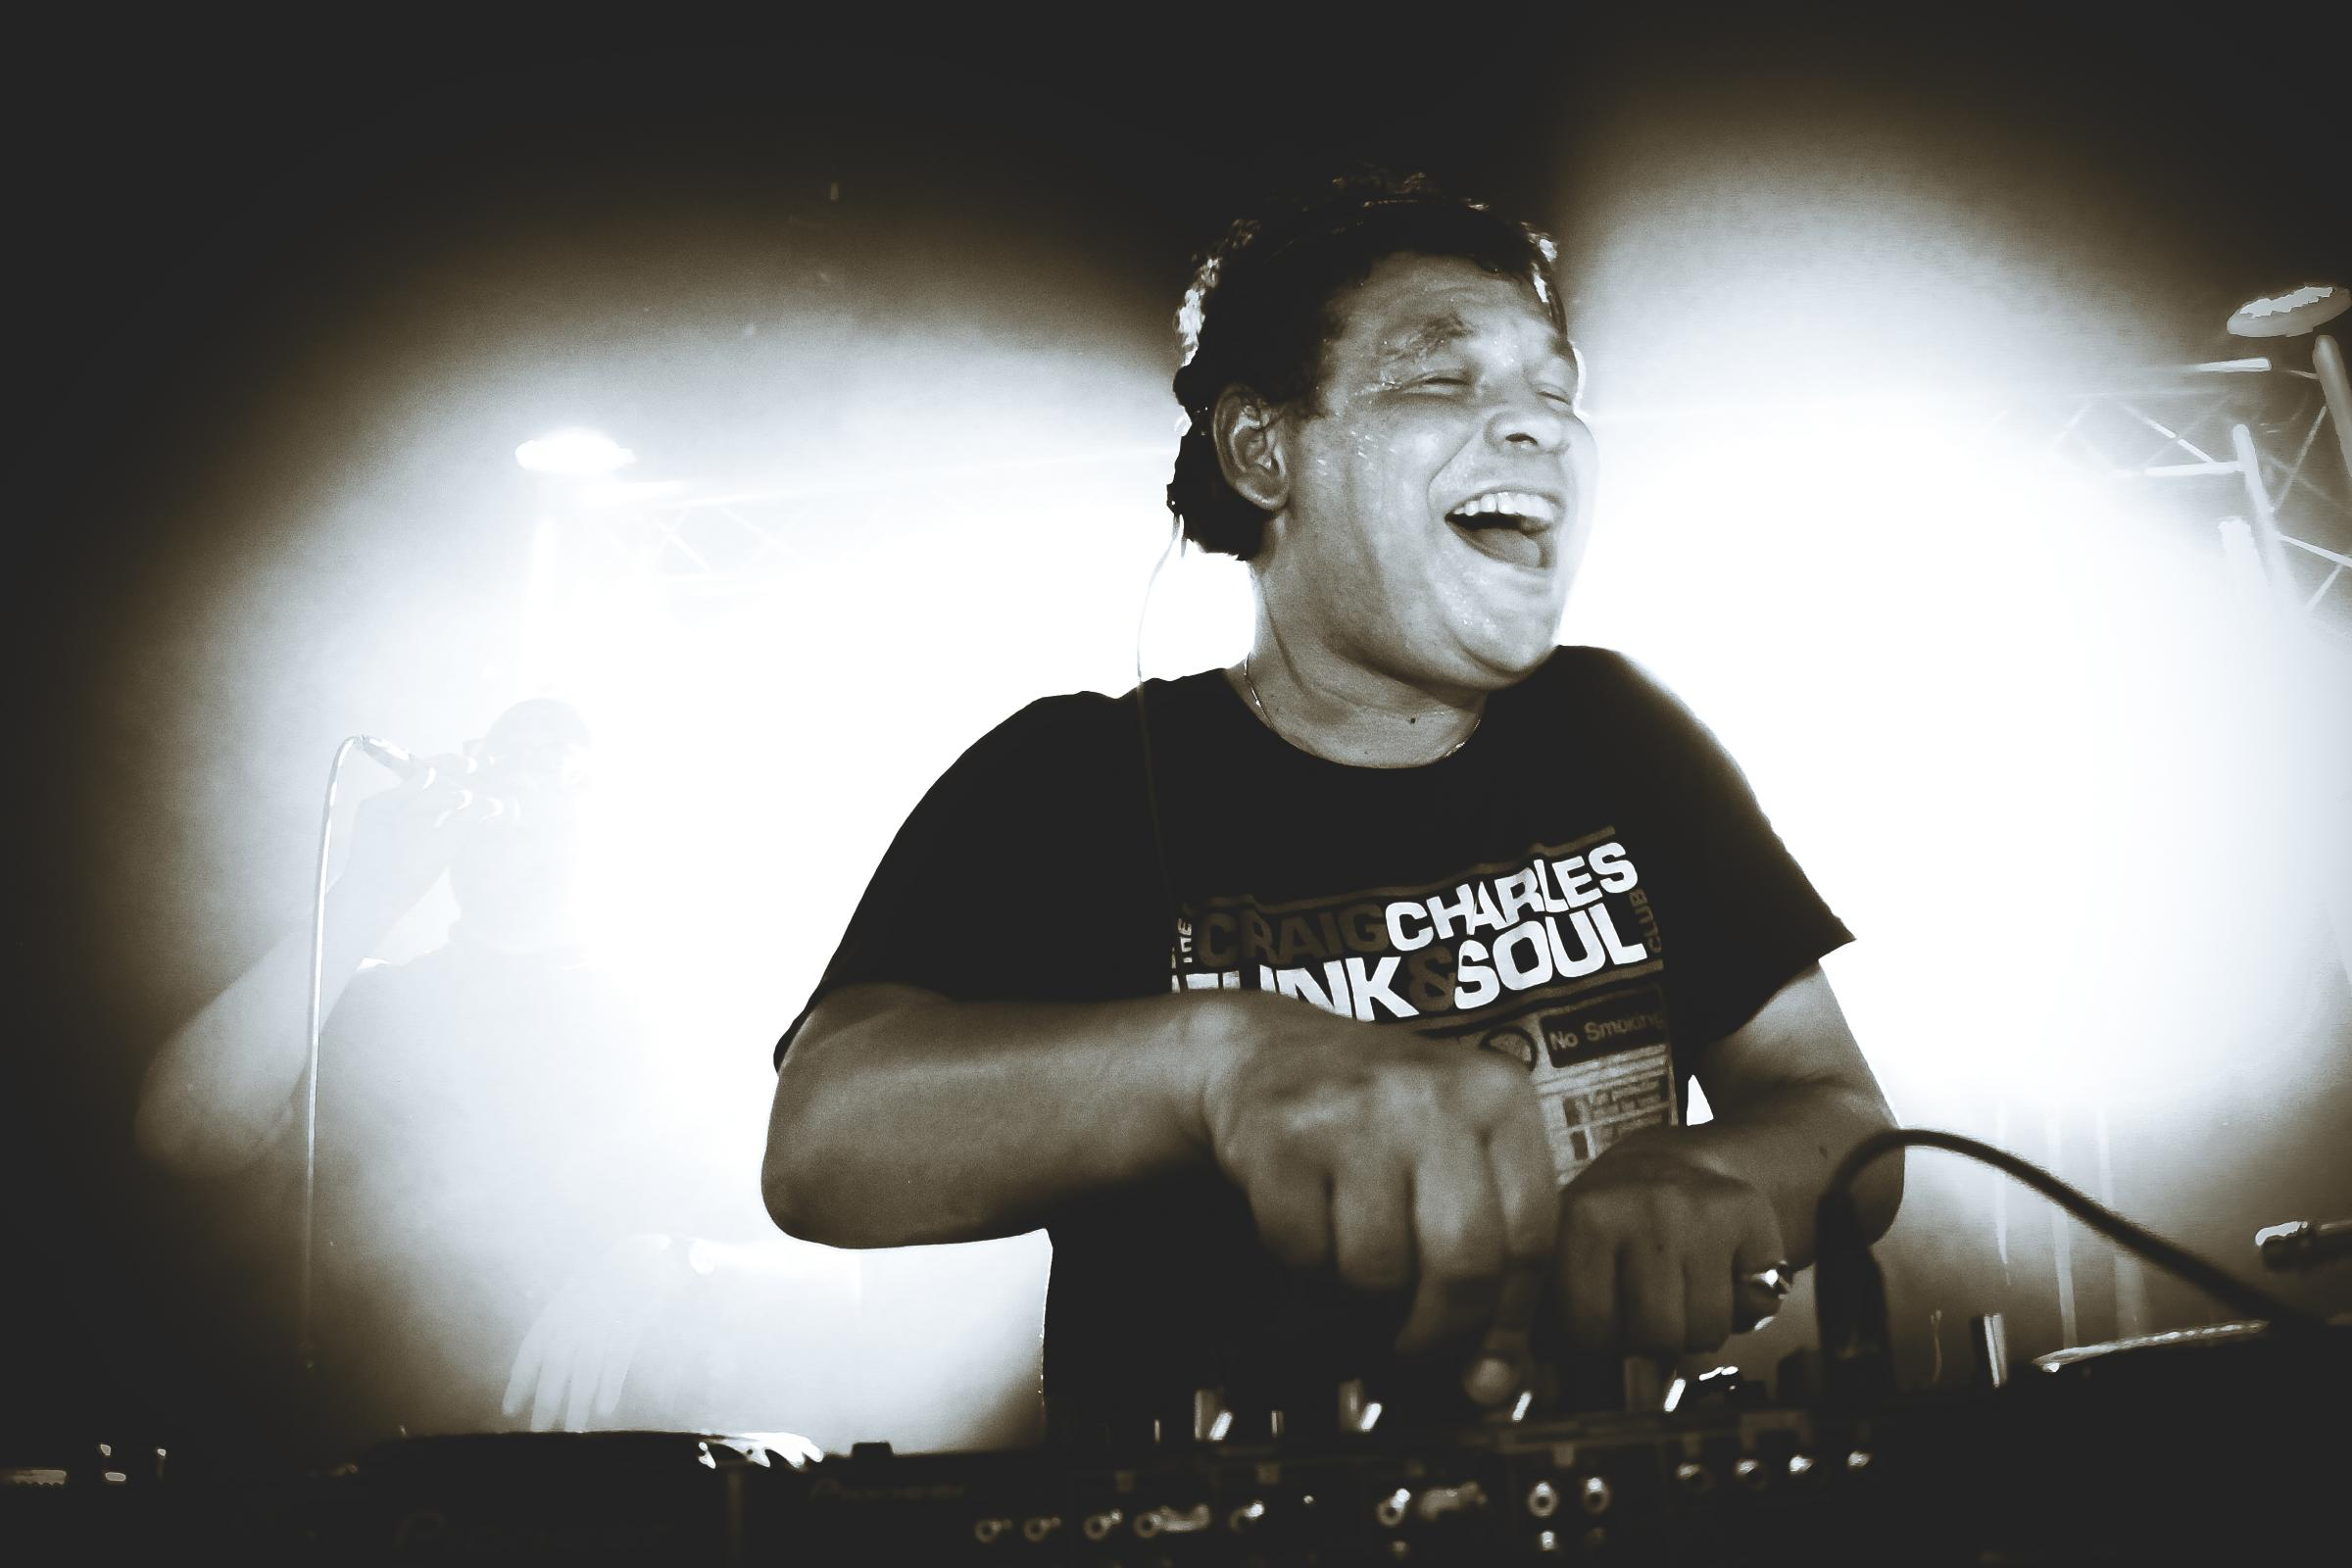 COMING TO BRIDGWATER: Actor and DJ Craig Charles